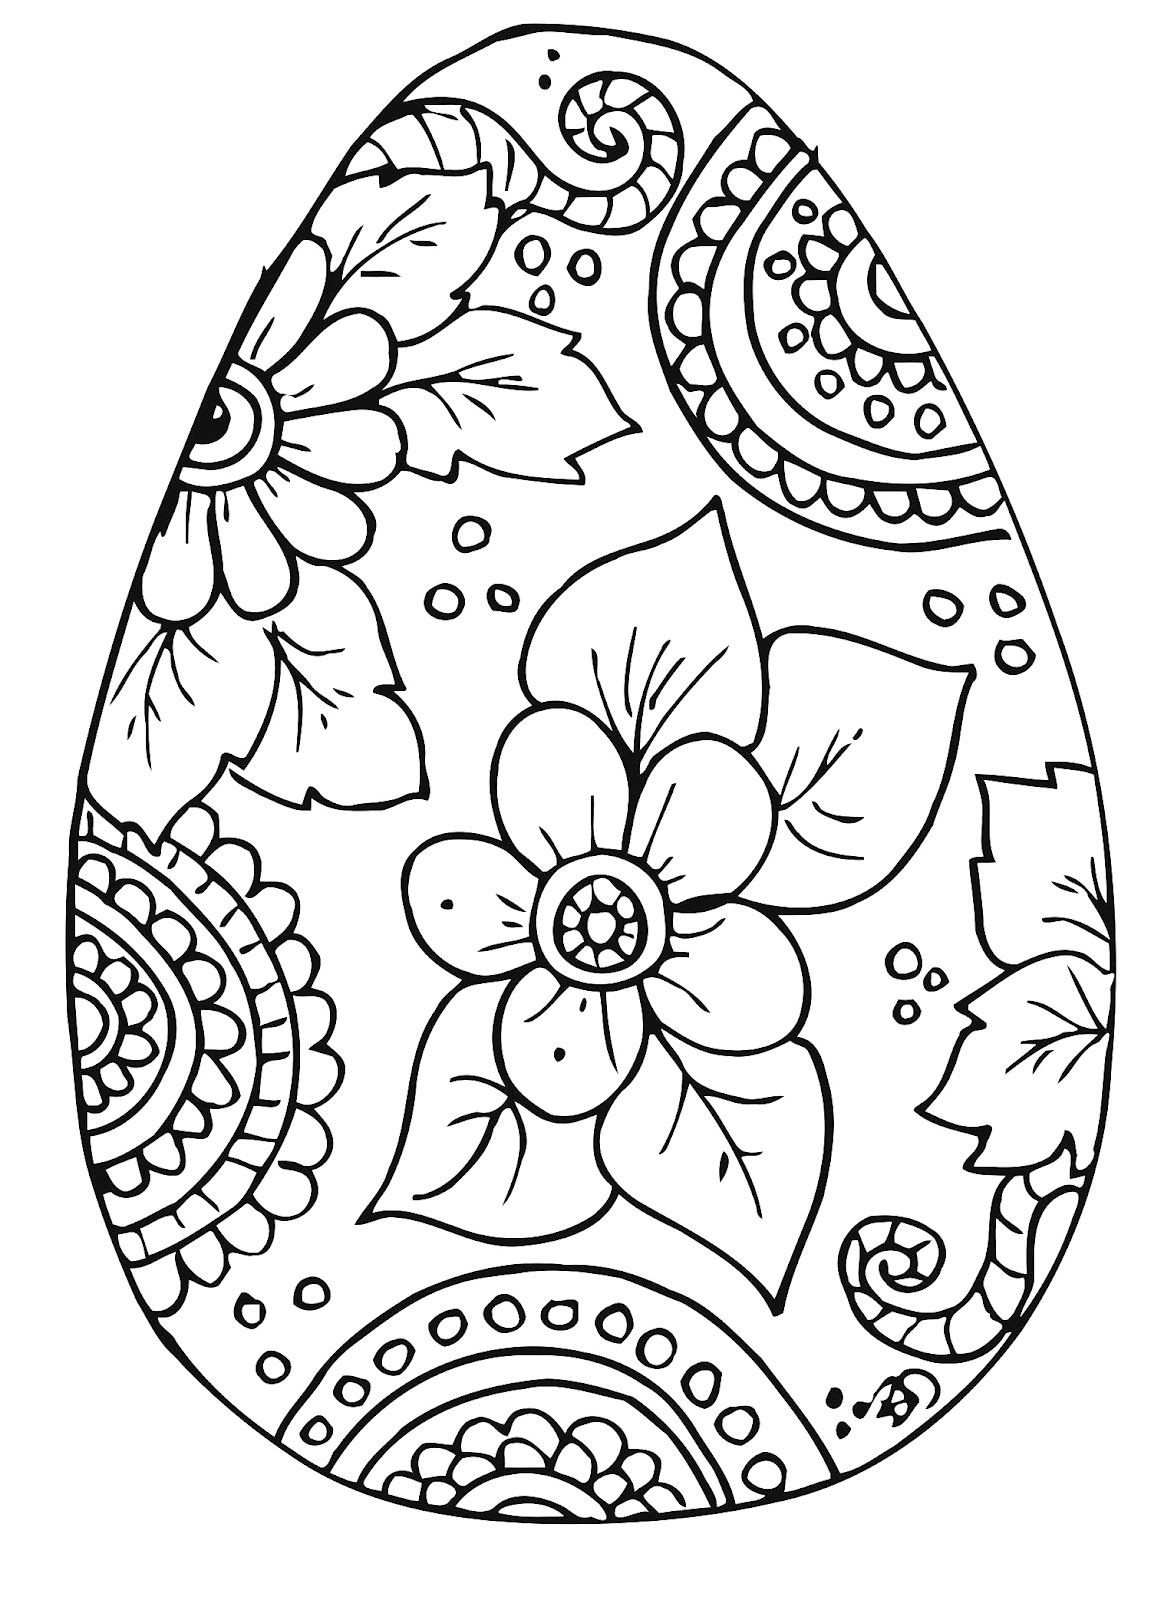 10 Cool Free Printable Easter Coloring Pages For Kids Who've Moved - Free Printable Easter Basket Coloring Pages